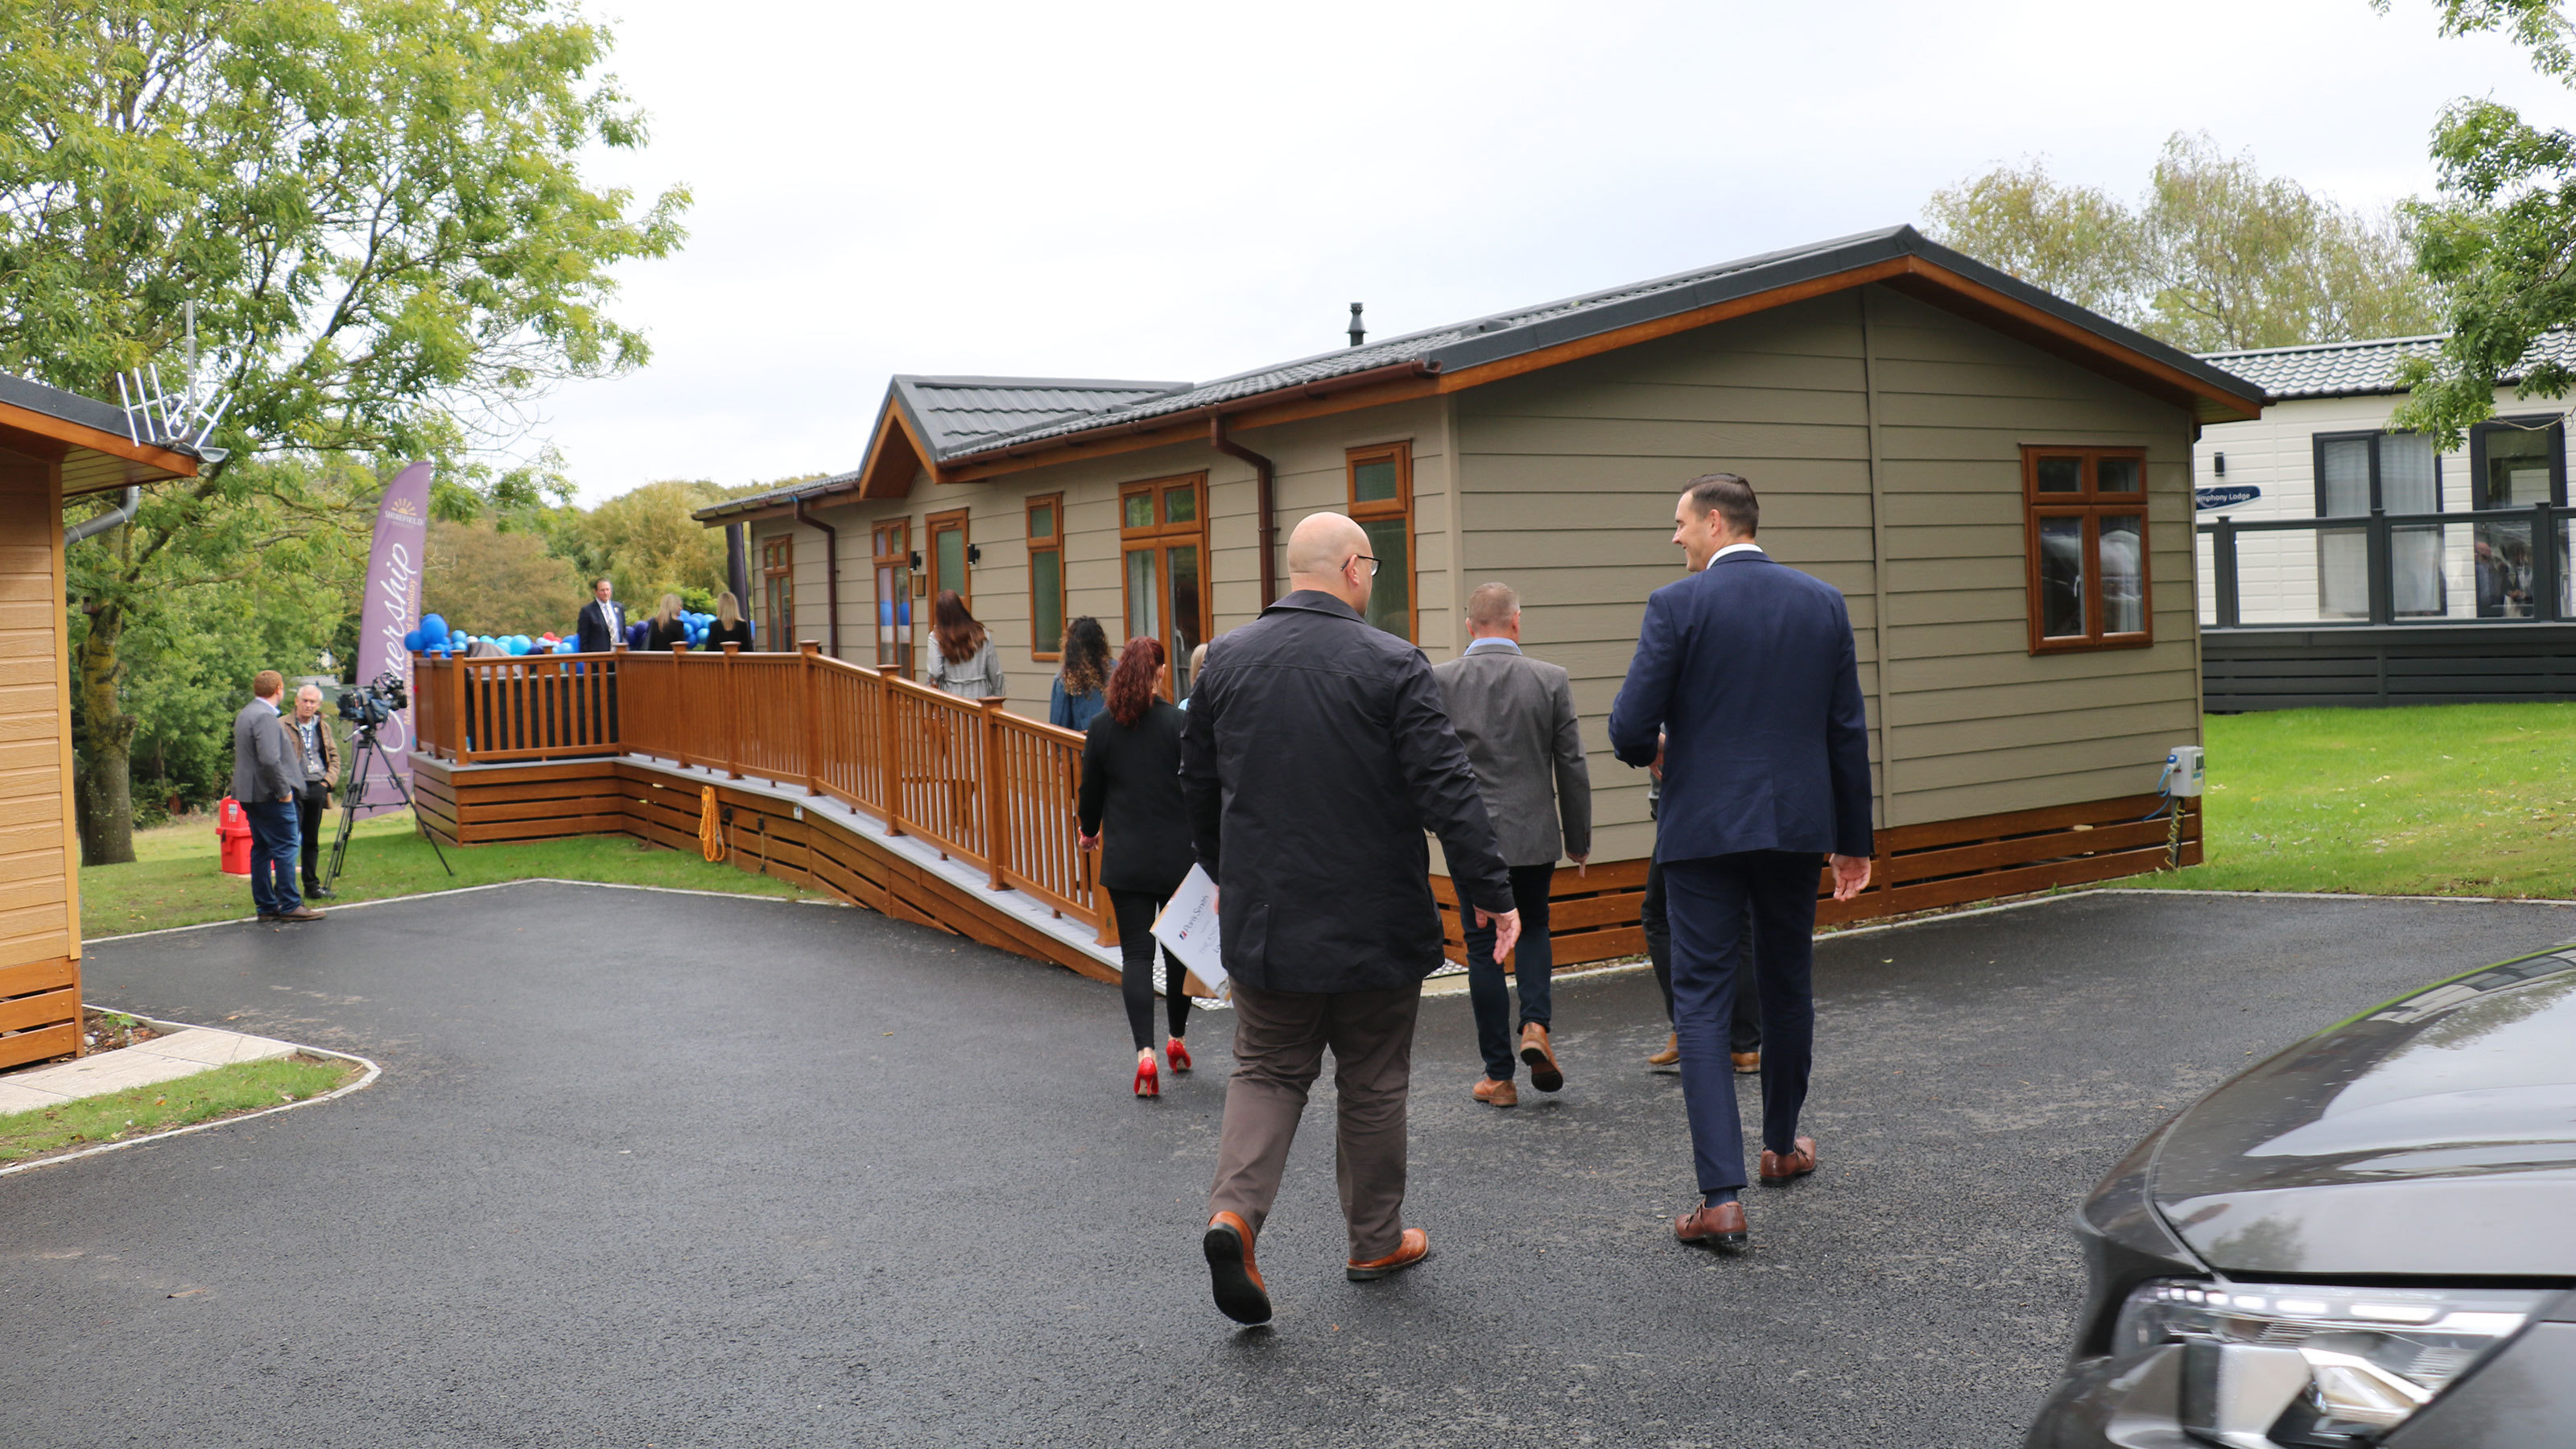 Guests-arriving-at-The-Knights-Foundation-Lodge-at-Shorefield-Country-Park